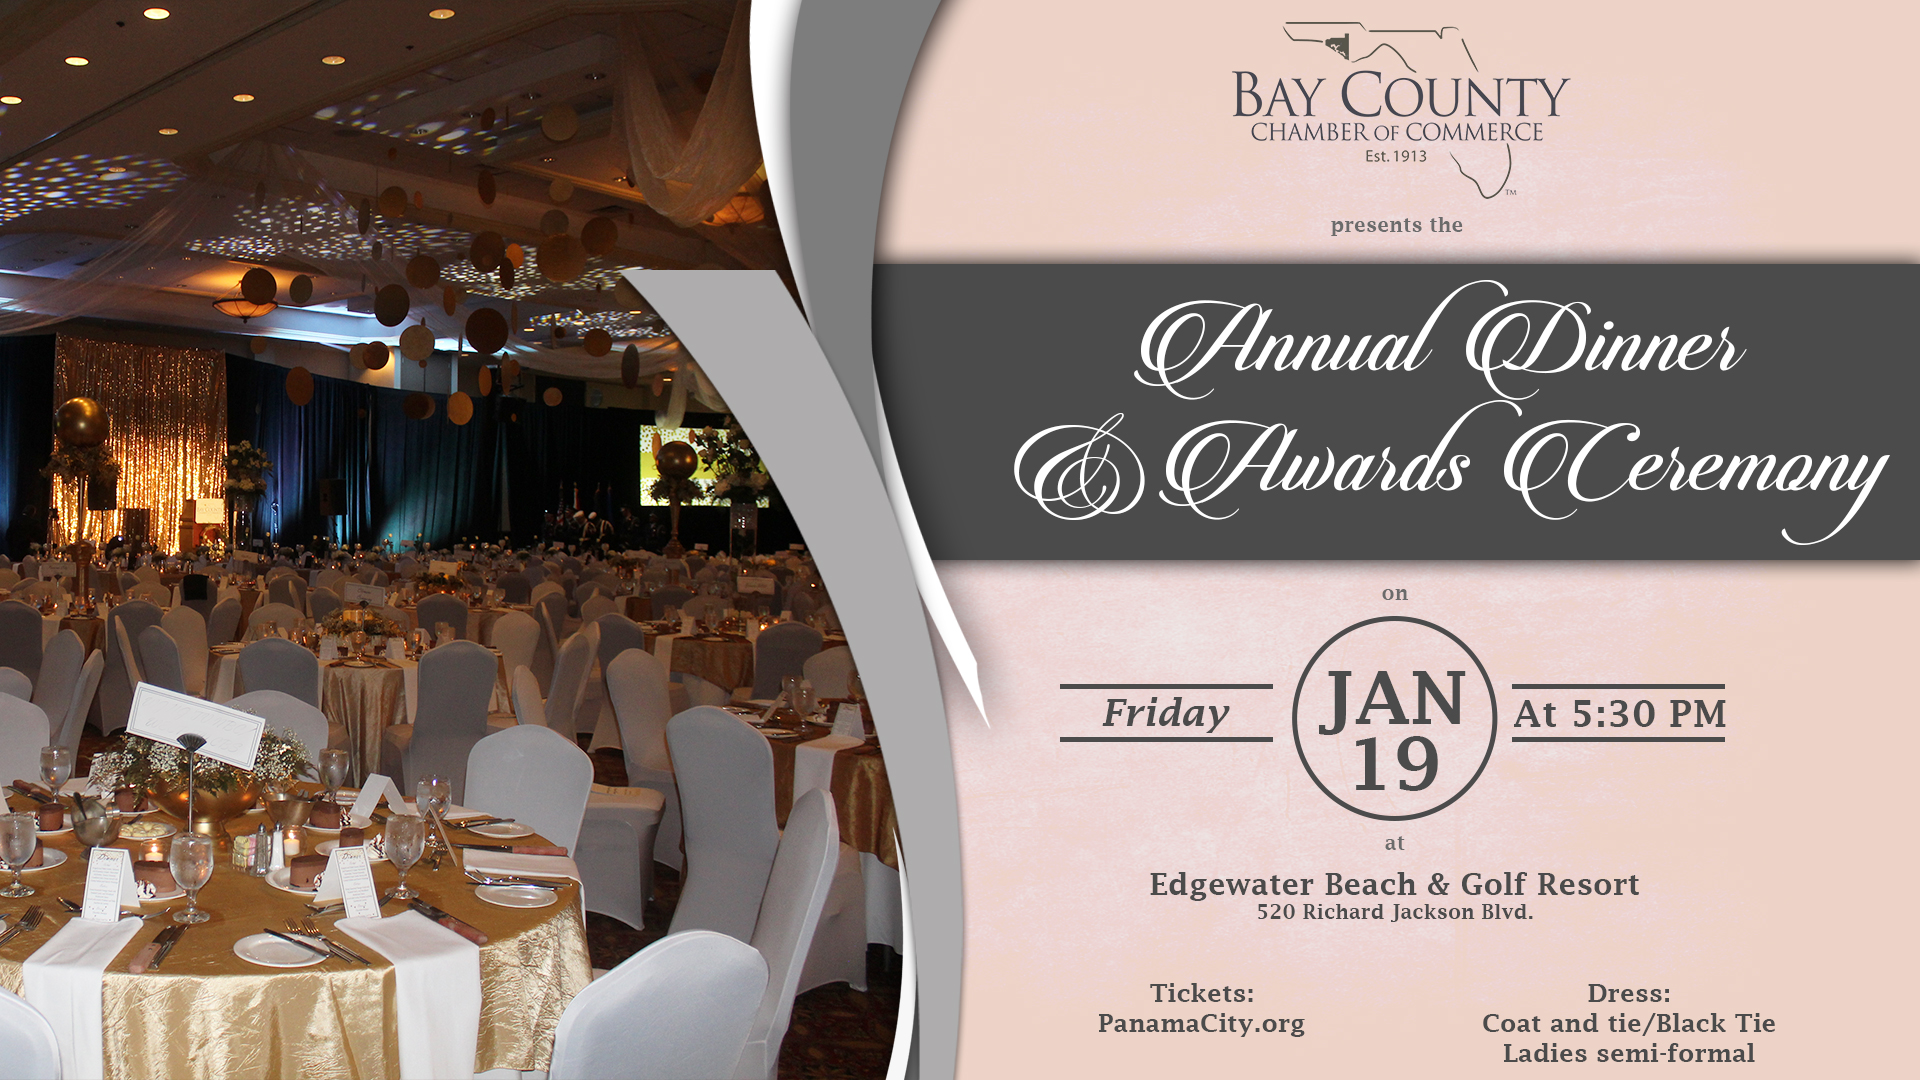 Join us for the Annual Dinner and Awards Ceremony on January 19th at 5:30 pm at Edgewater Beach and Golf Resort. Coat and tie or black-tie dress is required for men. Semi-formal attire is required for ladies.